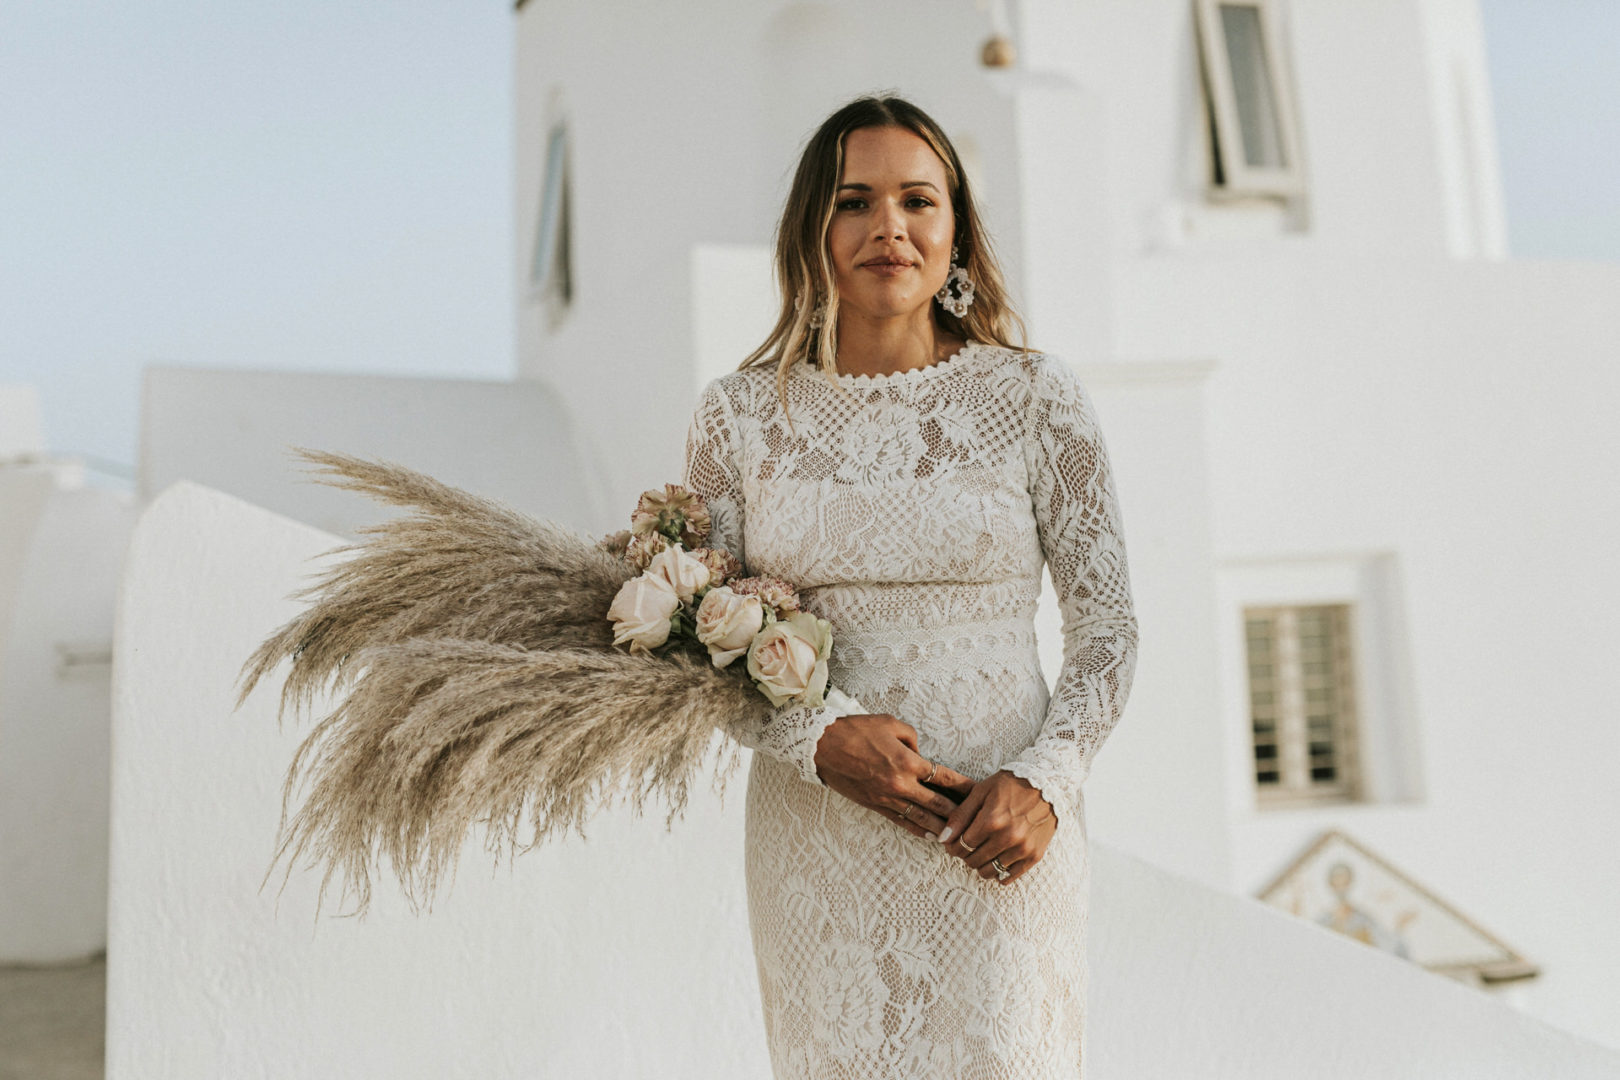 Bridal bouquet with pampass grass Santorini